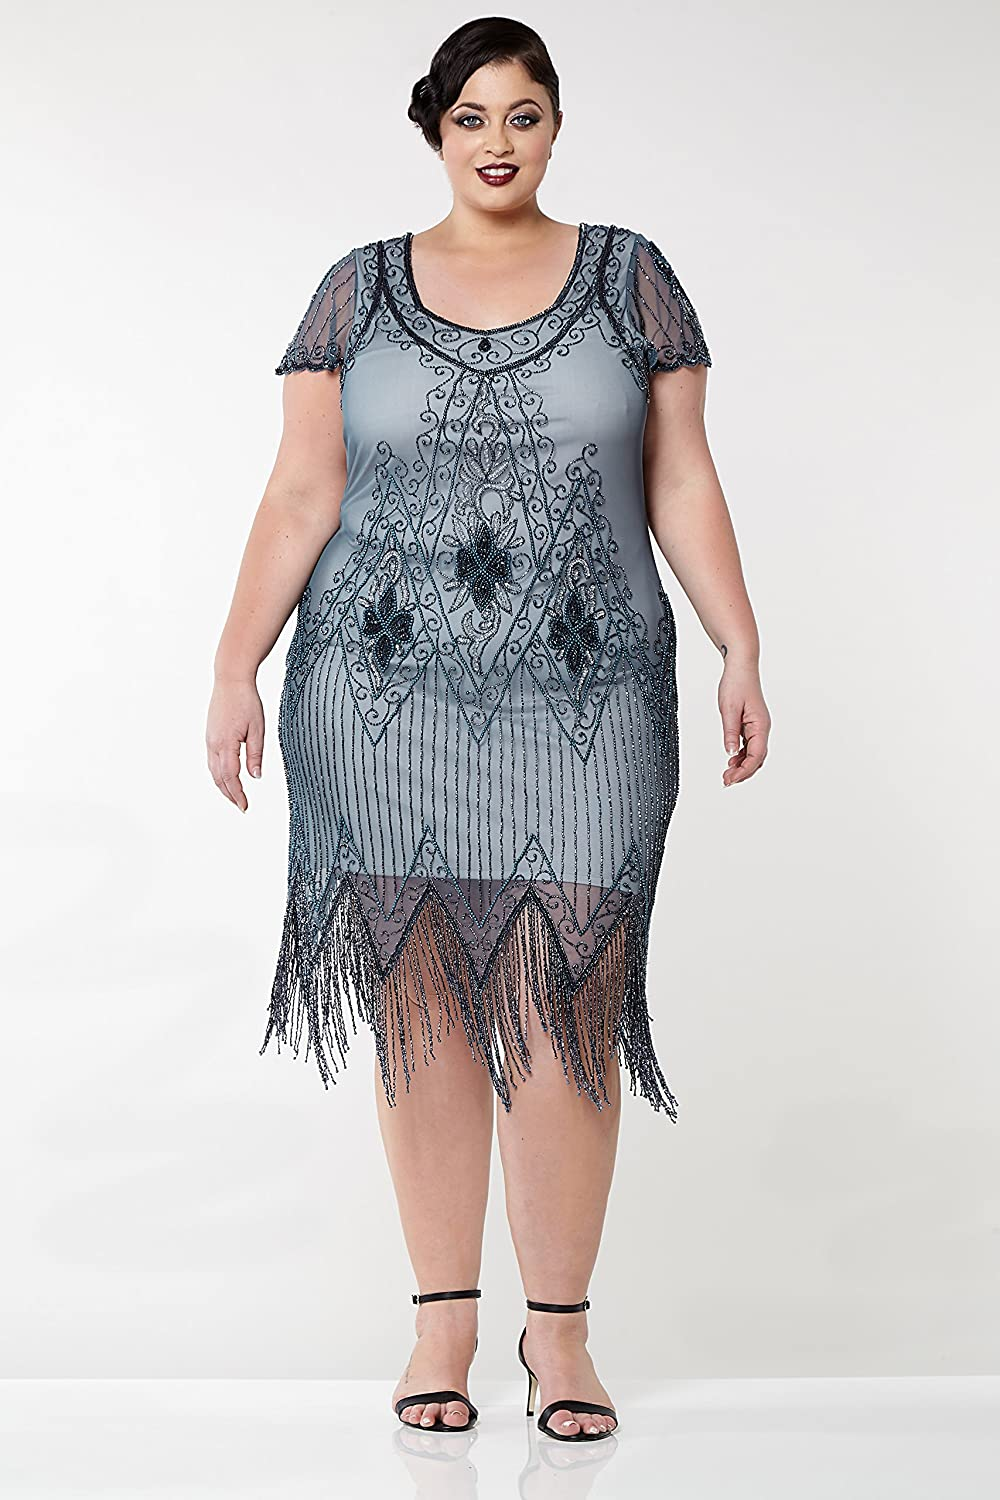 1920s Plus Size Flapper Dresses, Gatsby Dresses, Flapper Costumes gatsbylady london Annette Vintage Inspired Fringe Flapper Dress in Blue Grey $124.86 AT vintagedancer.com